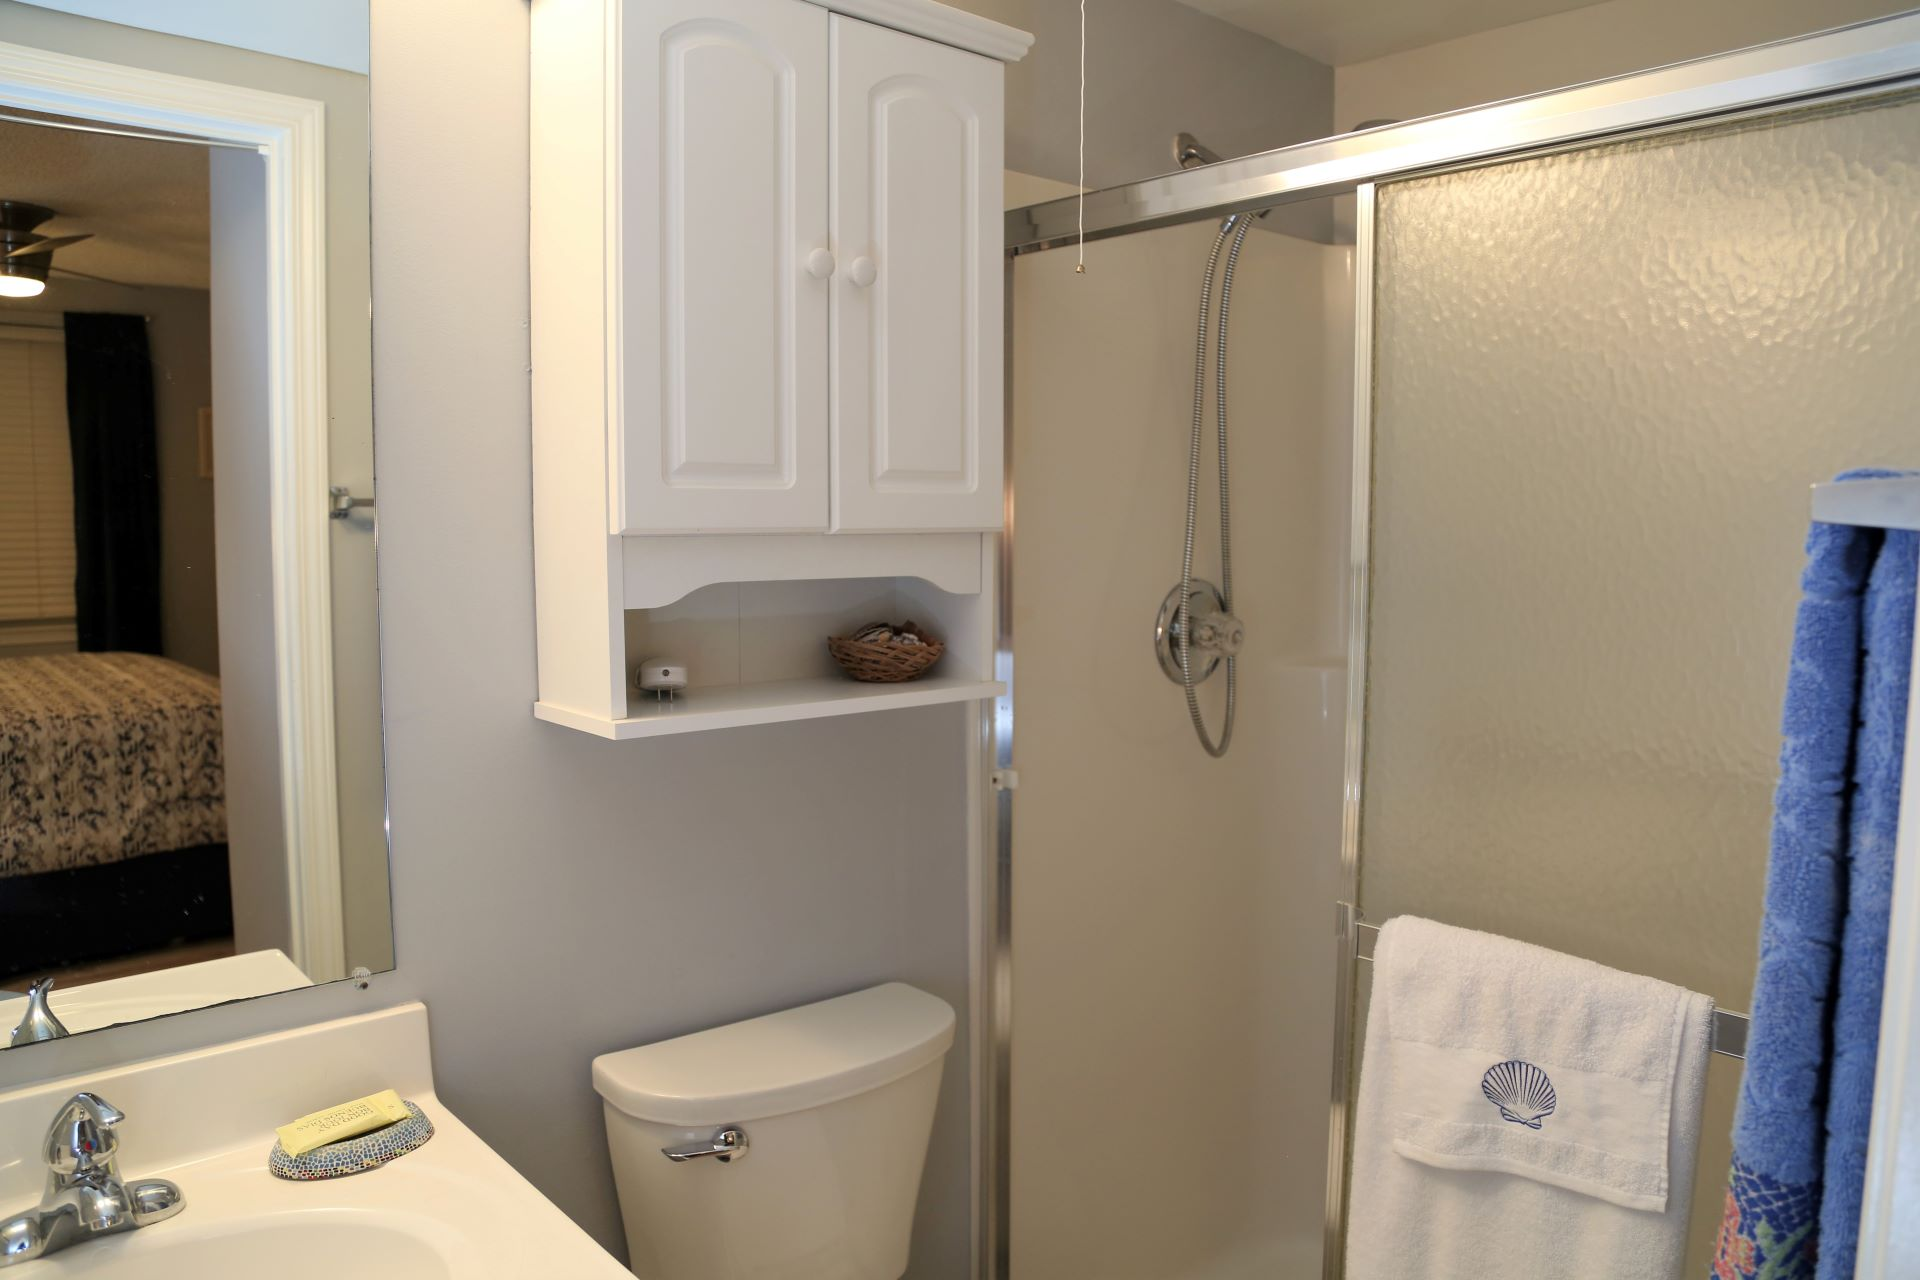 The en-suite master bathroom includes a stall shower and bat